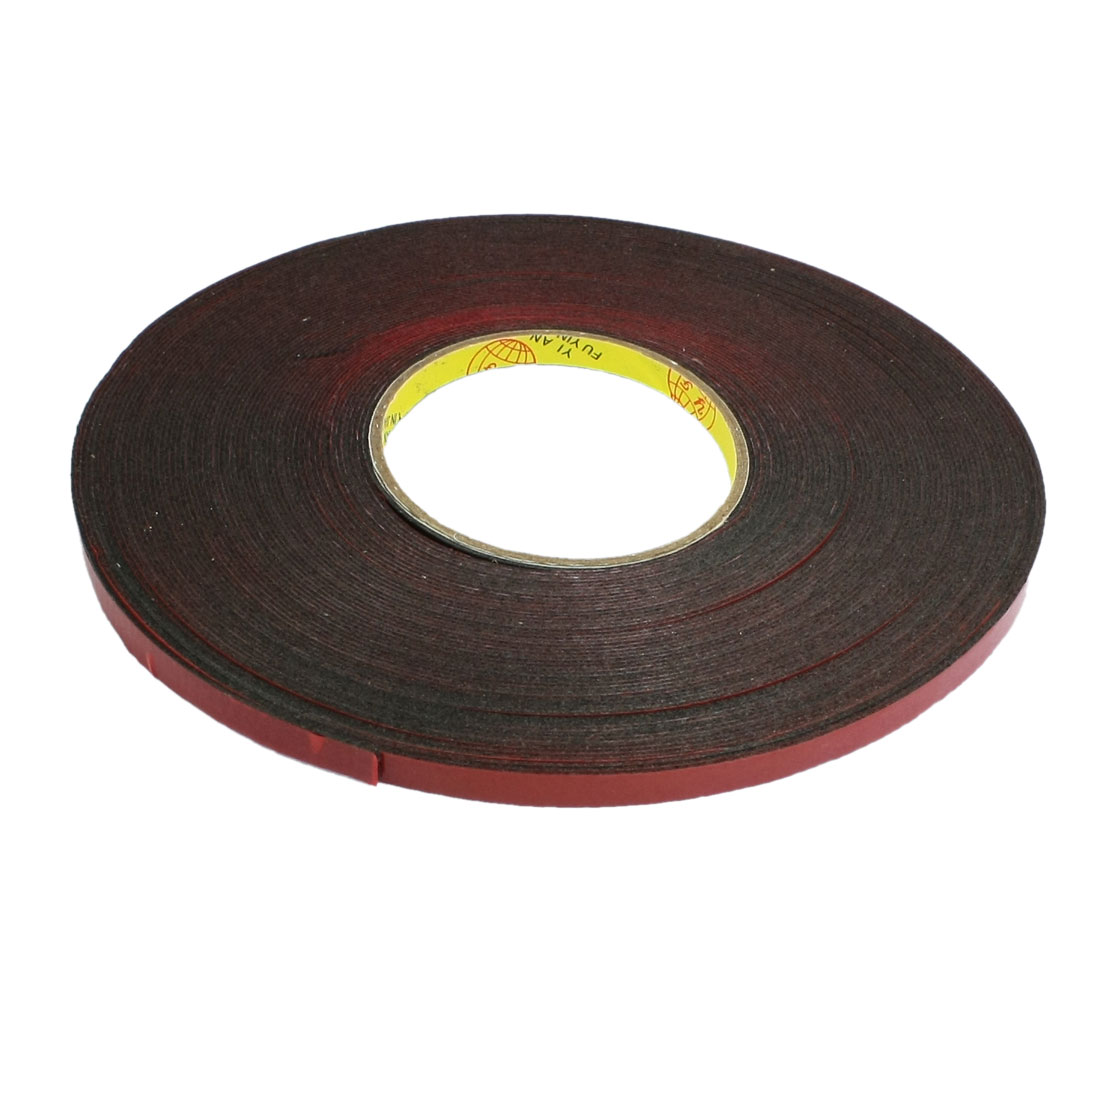 7mm Width 4.5 Meters Length Red Film Foam Double Sided Tape for Car Auto